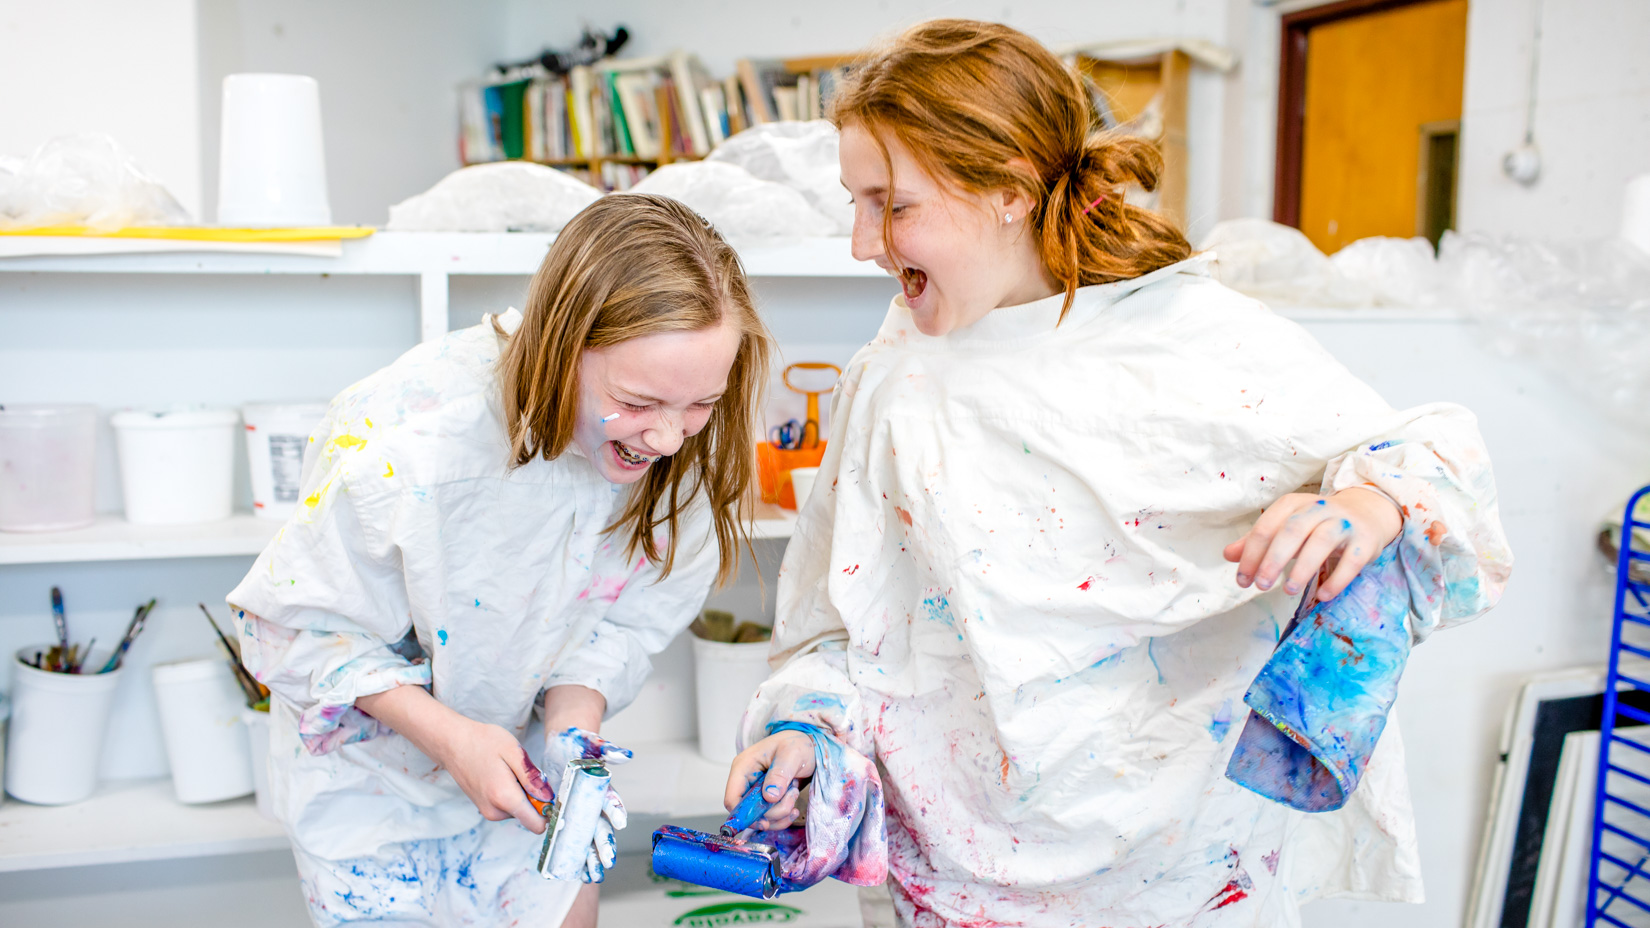 Two students working on an art project together and laughing.